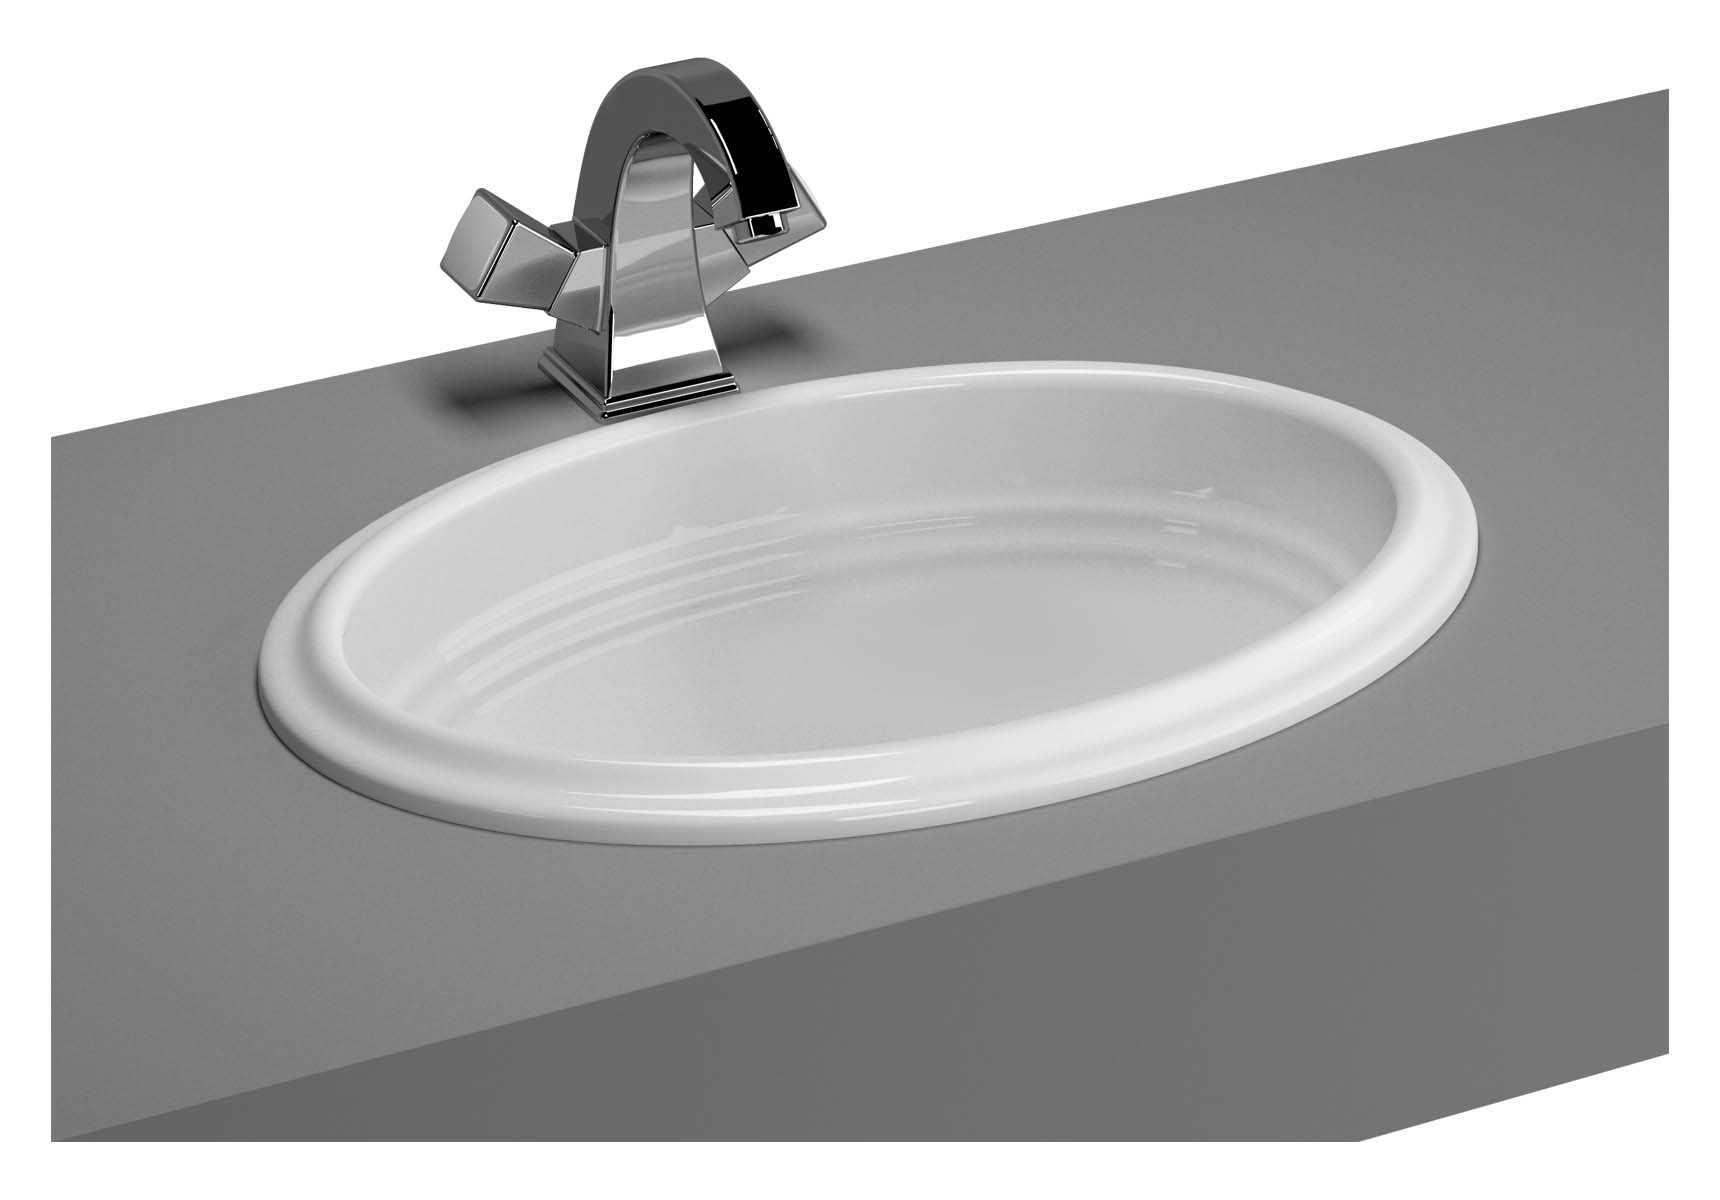 Efes Countertop Basin without Tap Hole, with Side Holes